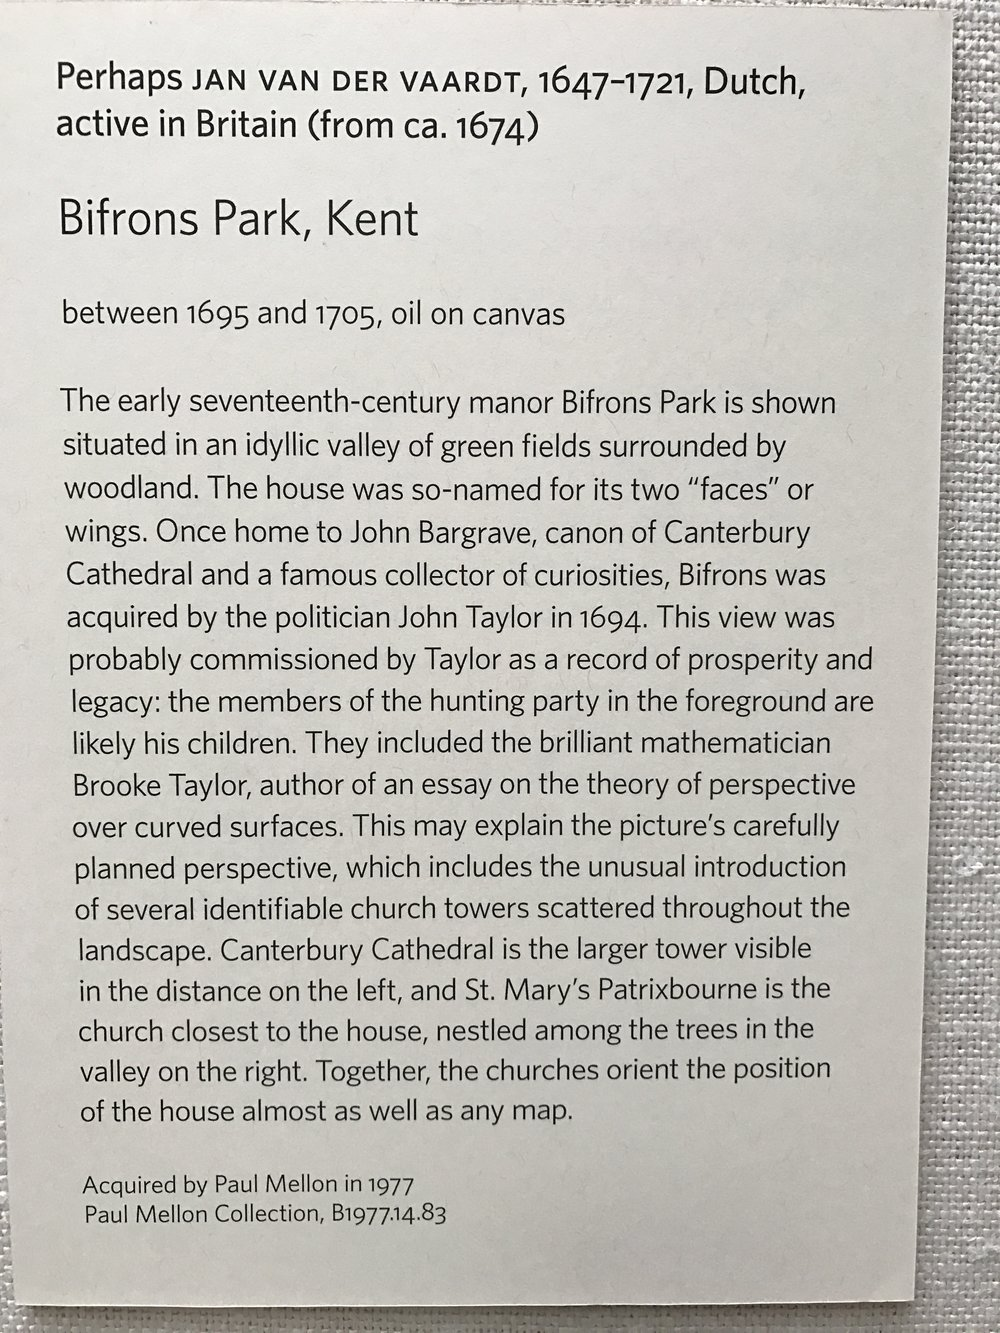 The Yale Center for British Art's label for  Bifrons Park, Kent,  the painting shown above.